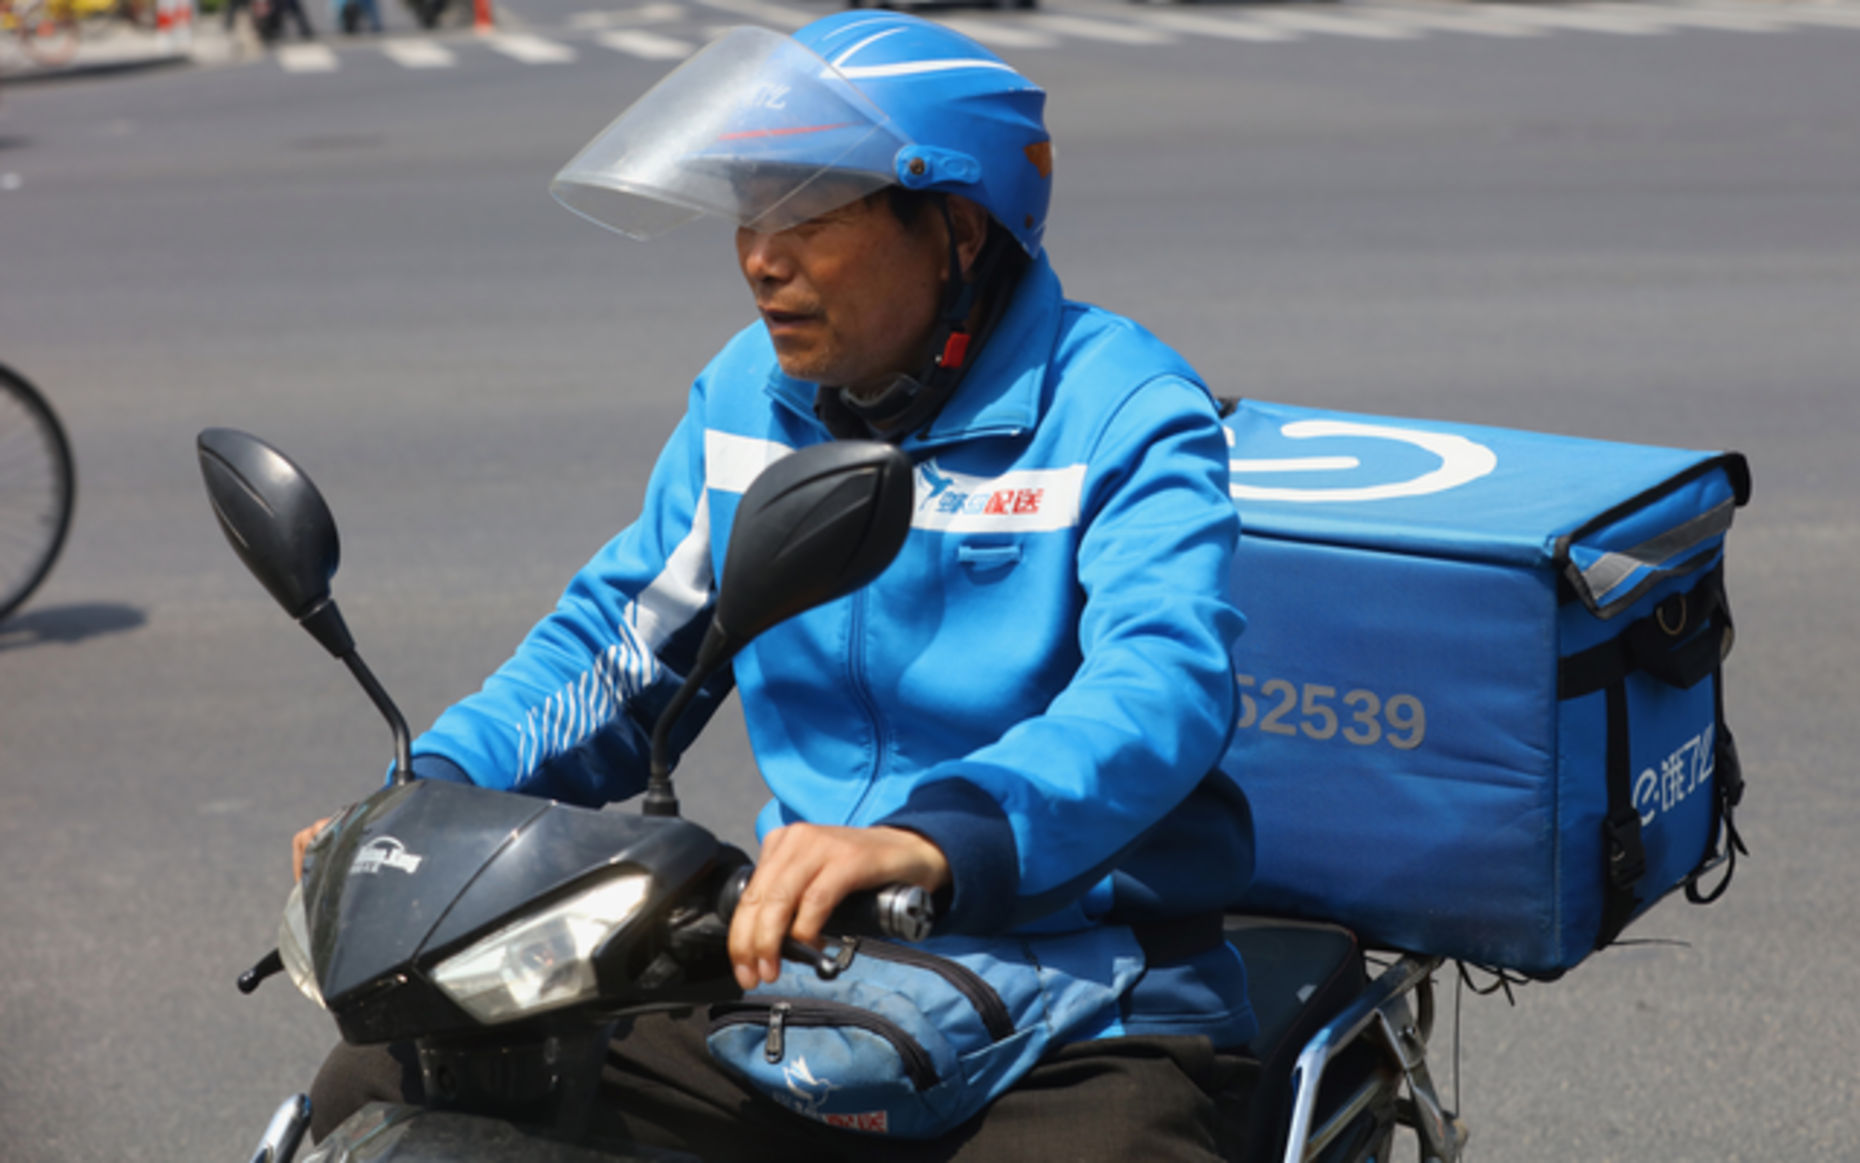 An Ele.me delivery courier in Shanghai in April. Photo by AP